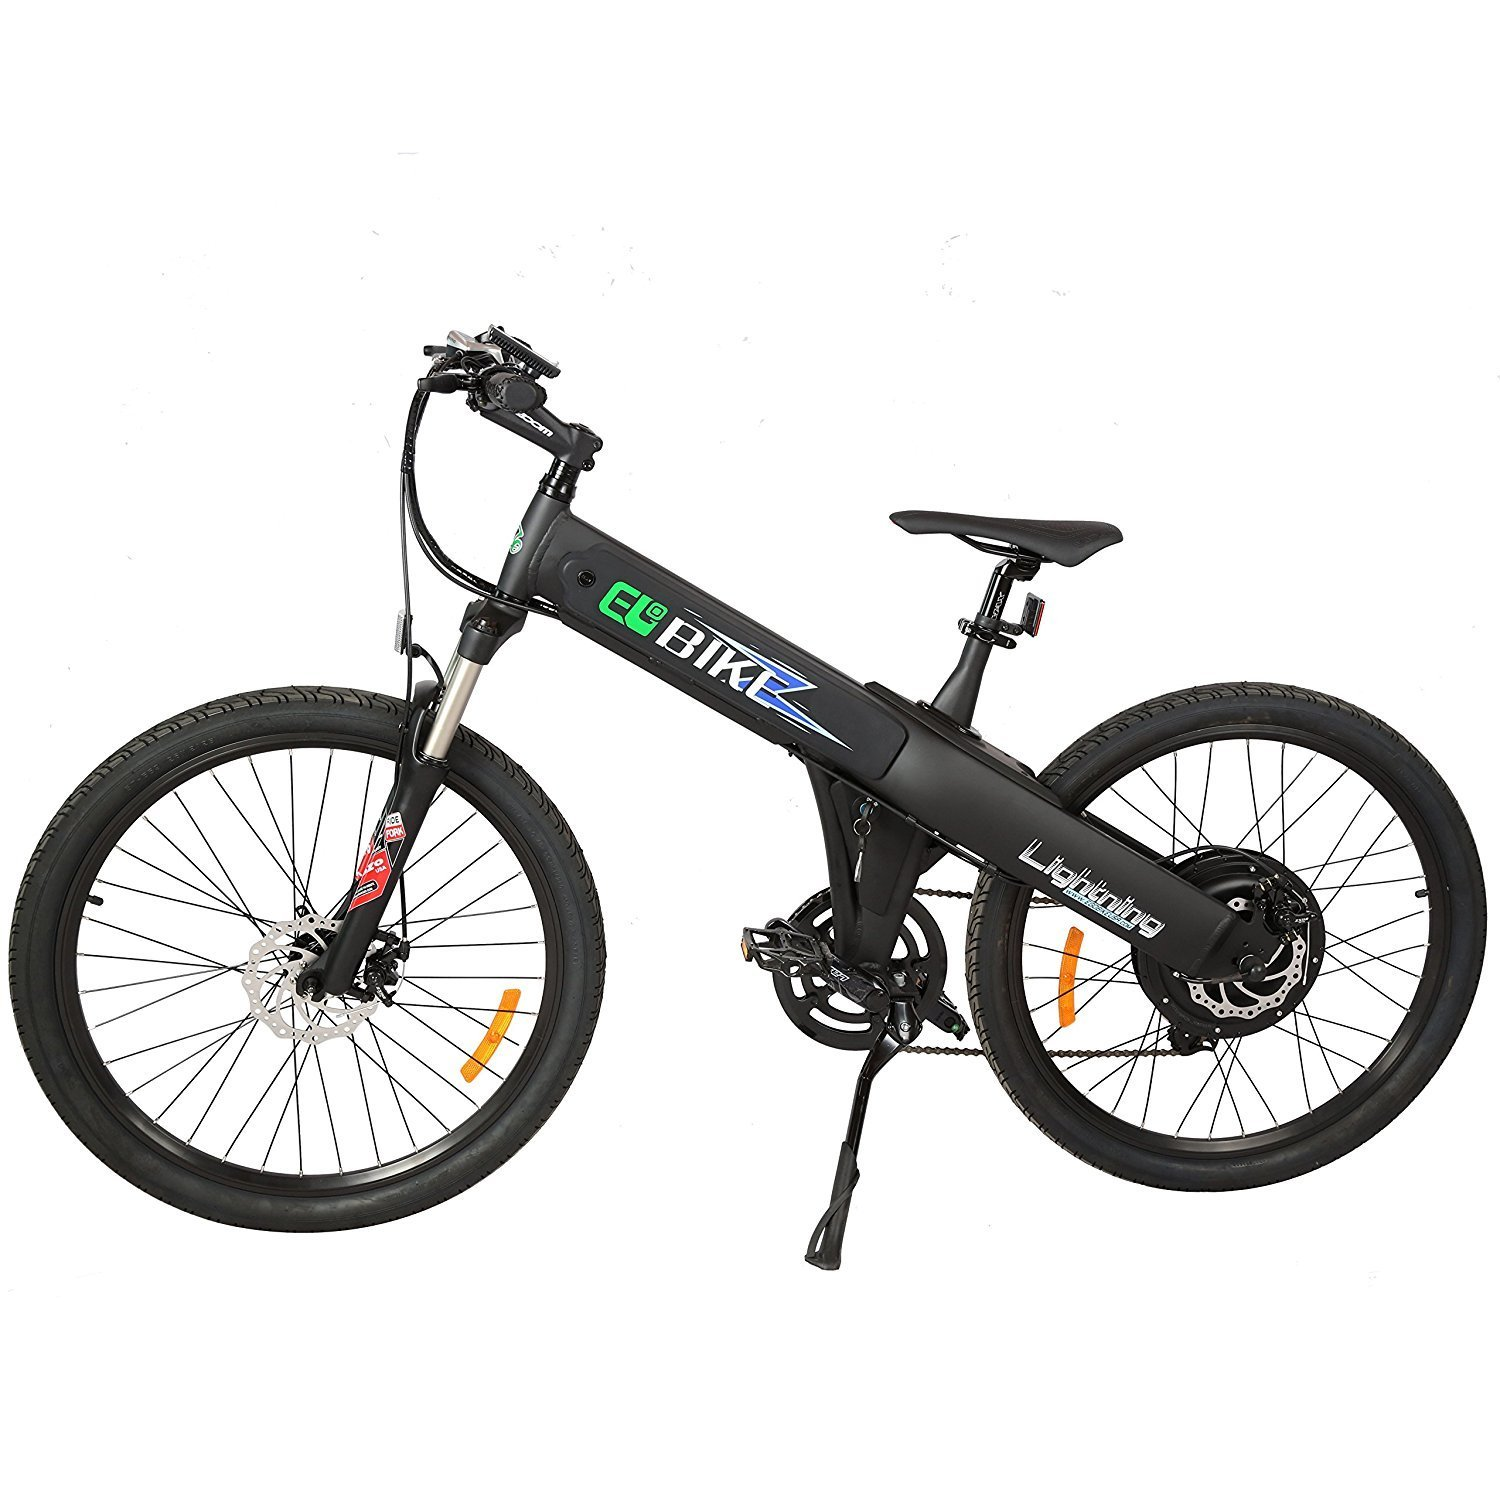 e go electric bike matt black electric bicycle mountain 500w gearscoot. Black Bedroom Furniture Sets. Home Design Ideas